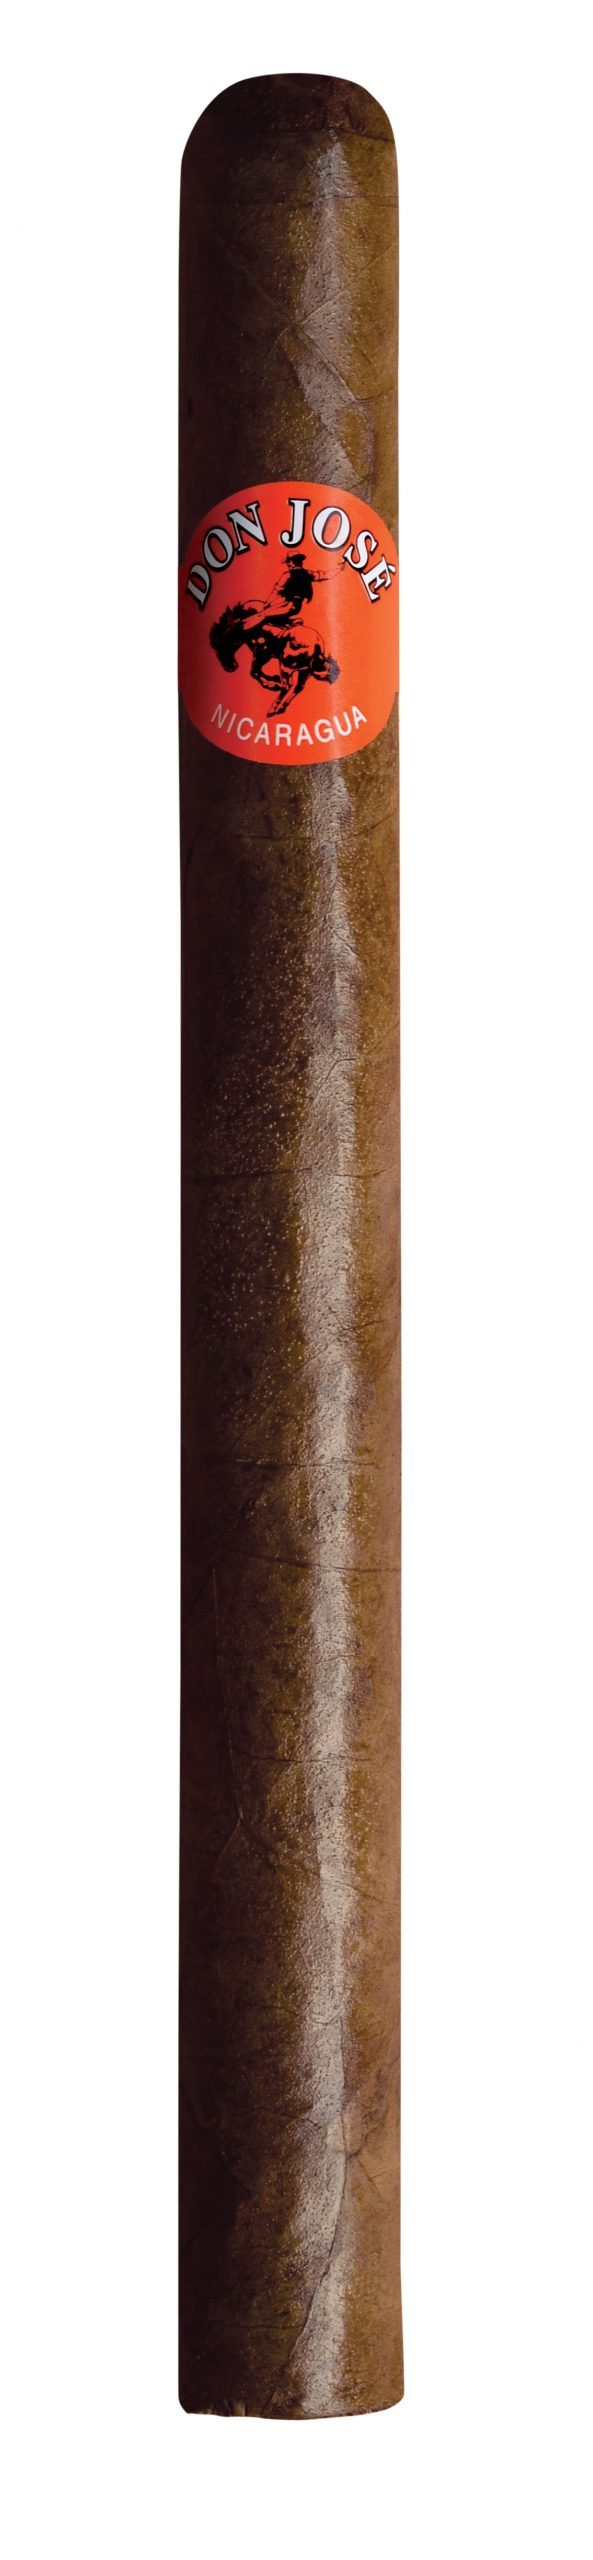 don jose el grandee single cigar